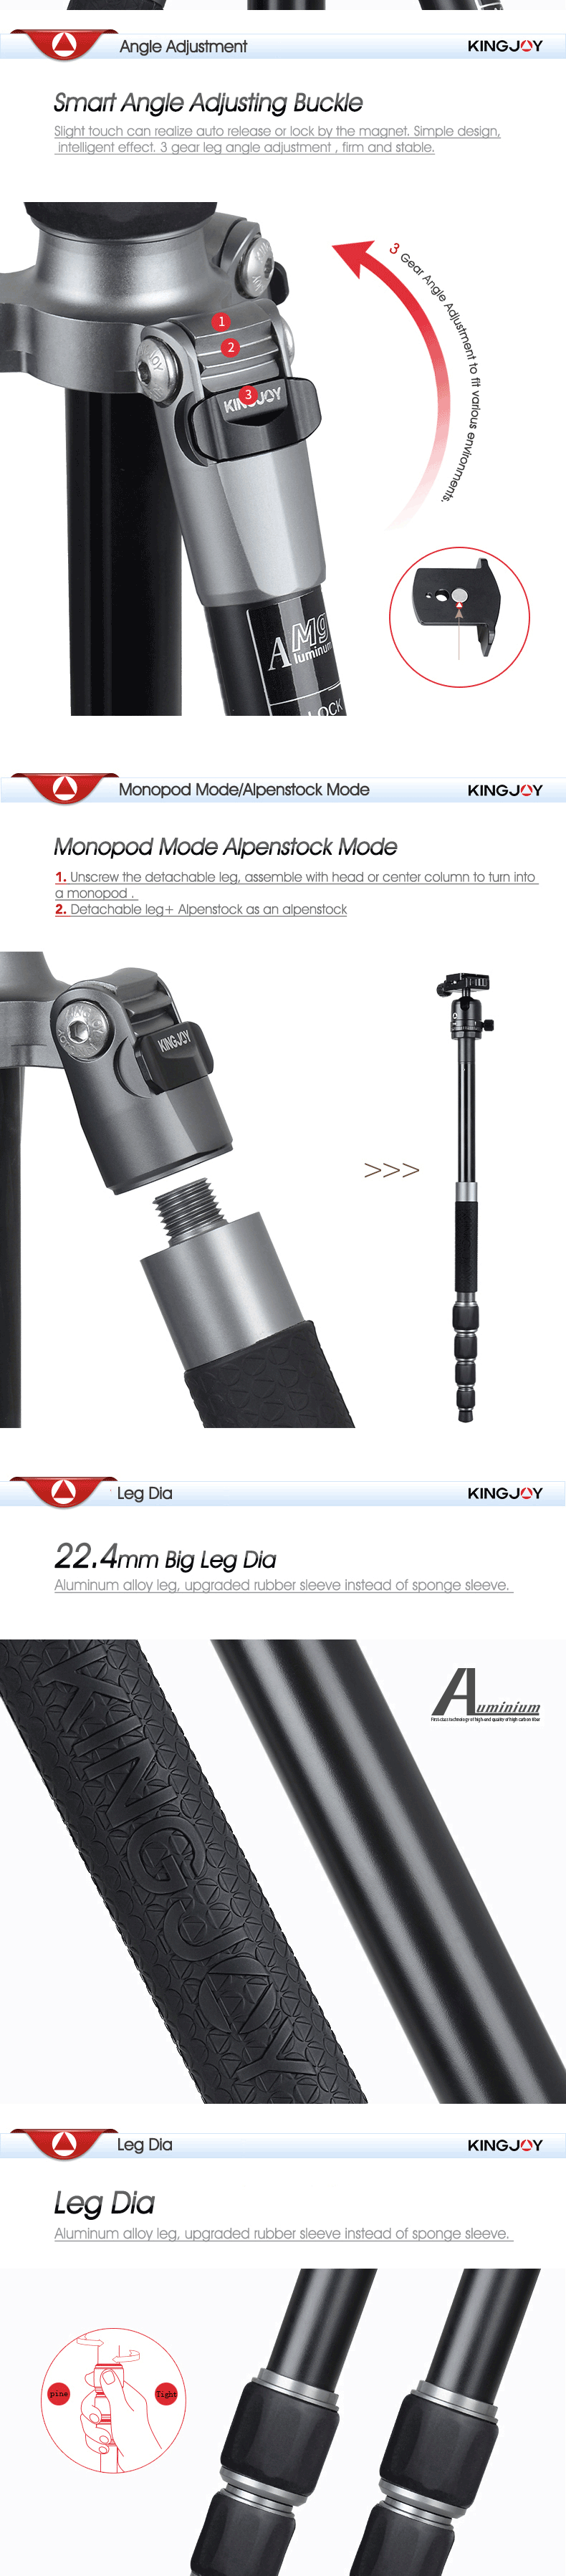 Kingjoy New Multi-functional 5 Sections Aluminum Tripod Monopod with 360degree Panoramic Ball Head